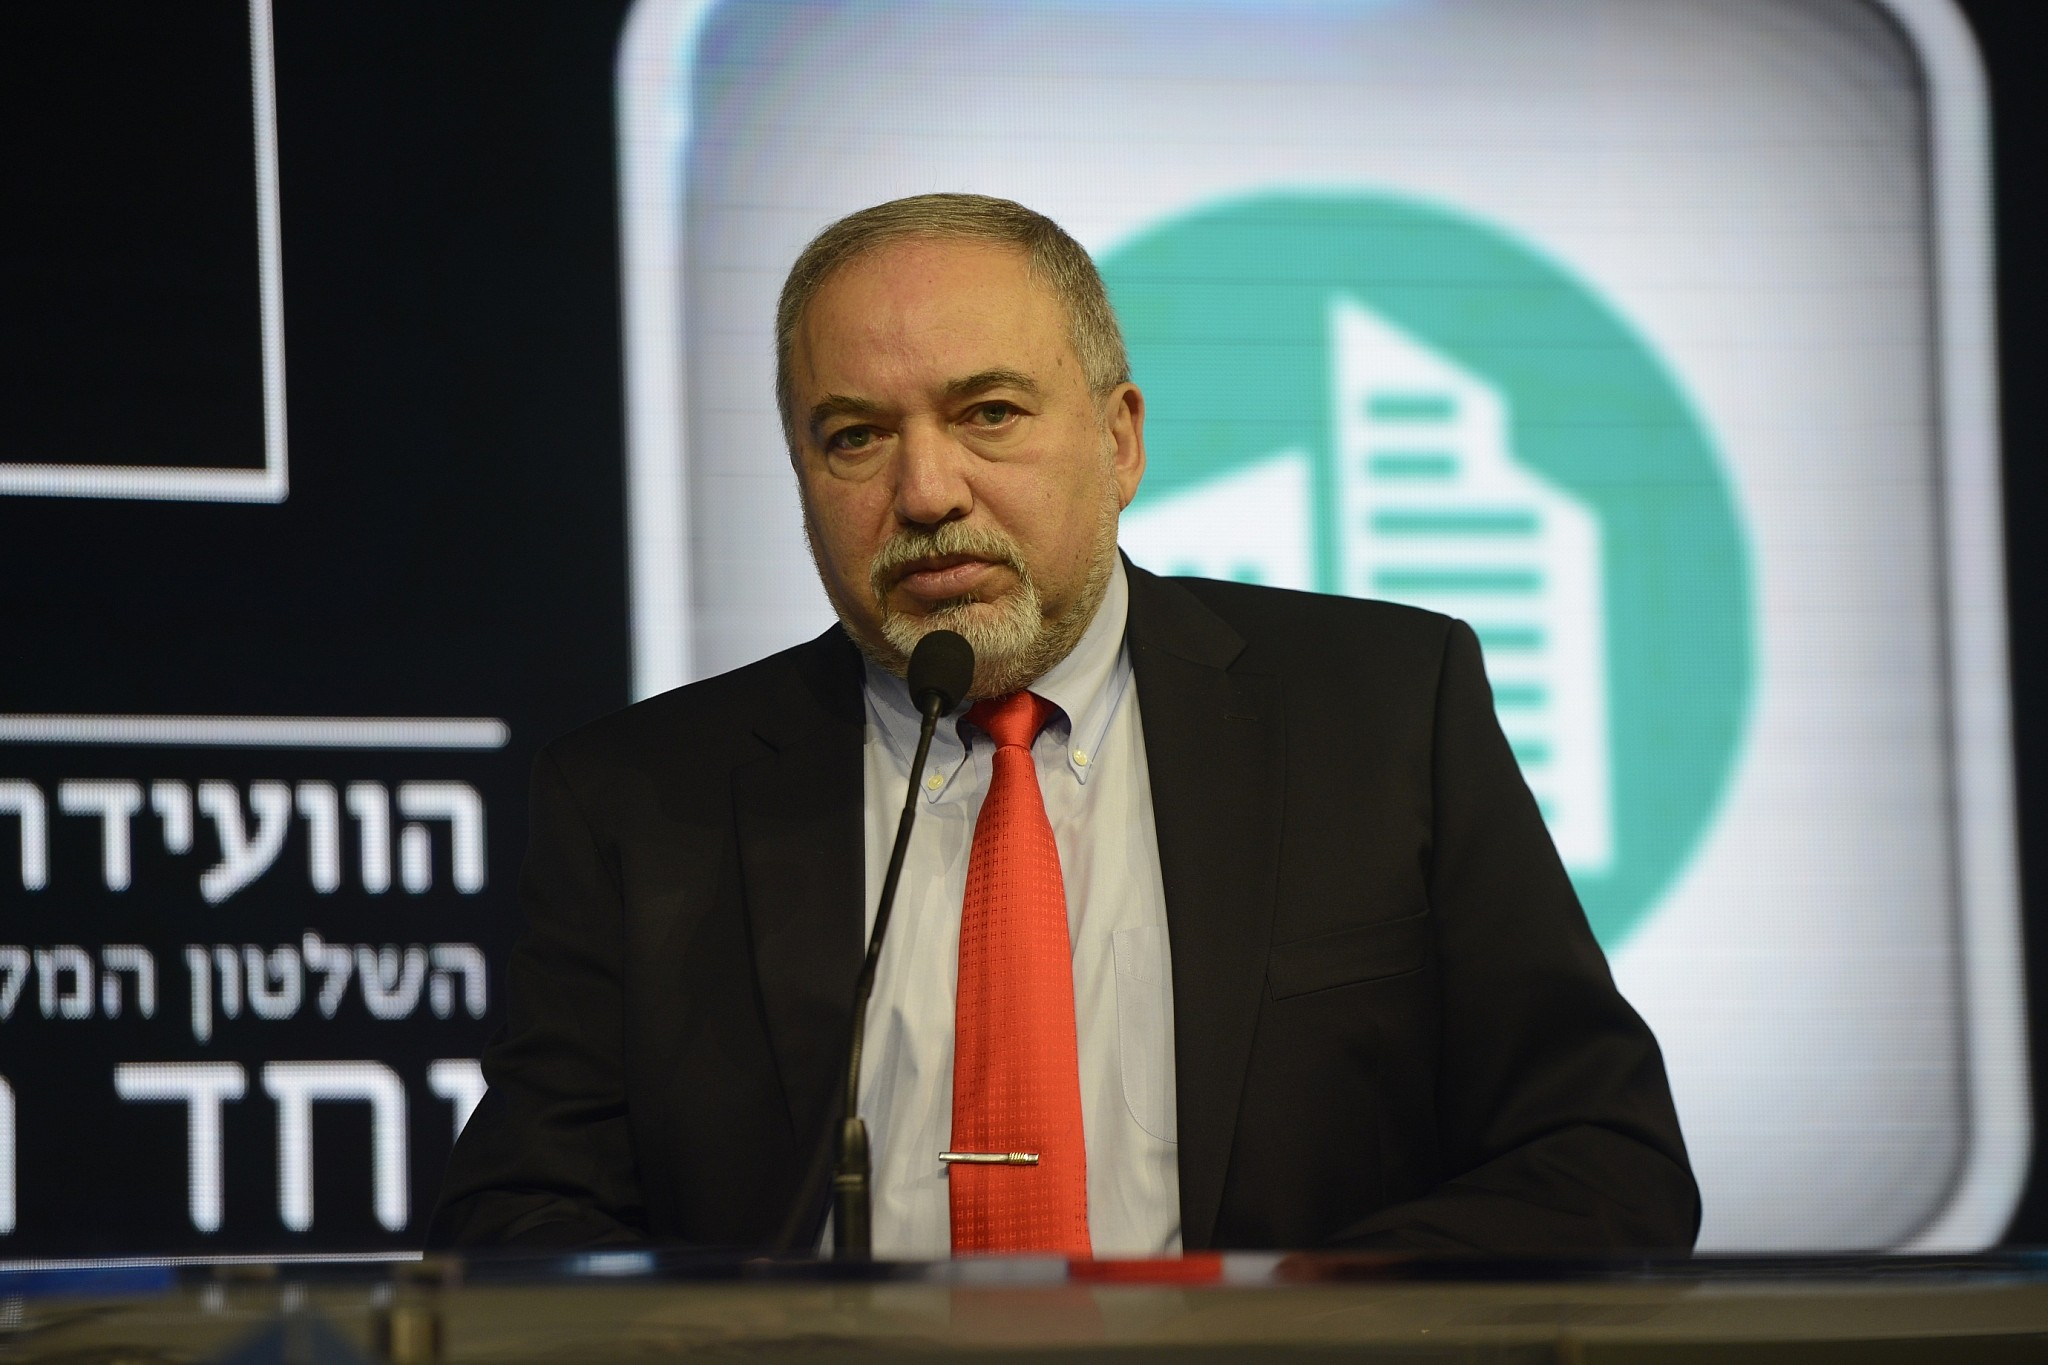 Defense Minister Avigdor Liberman speaks at a conference of local governments in Tel Aviv